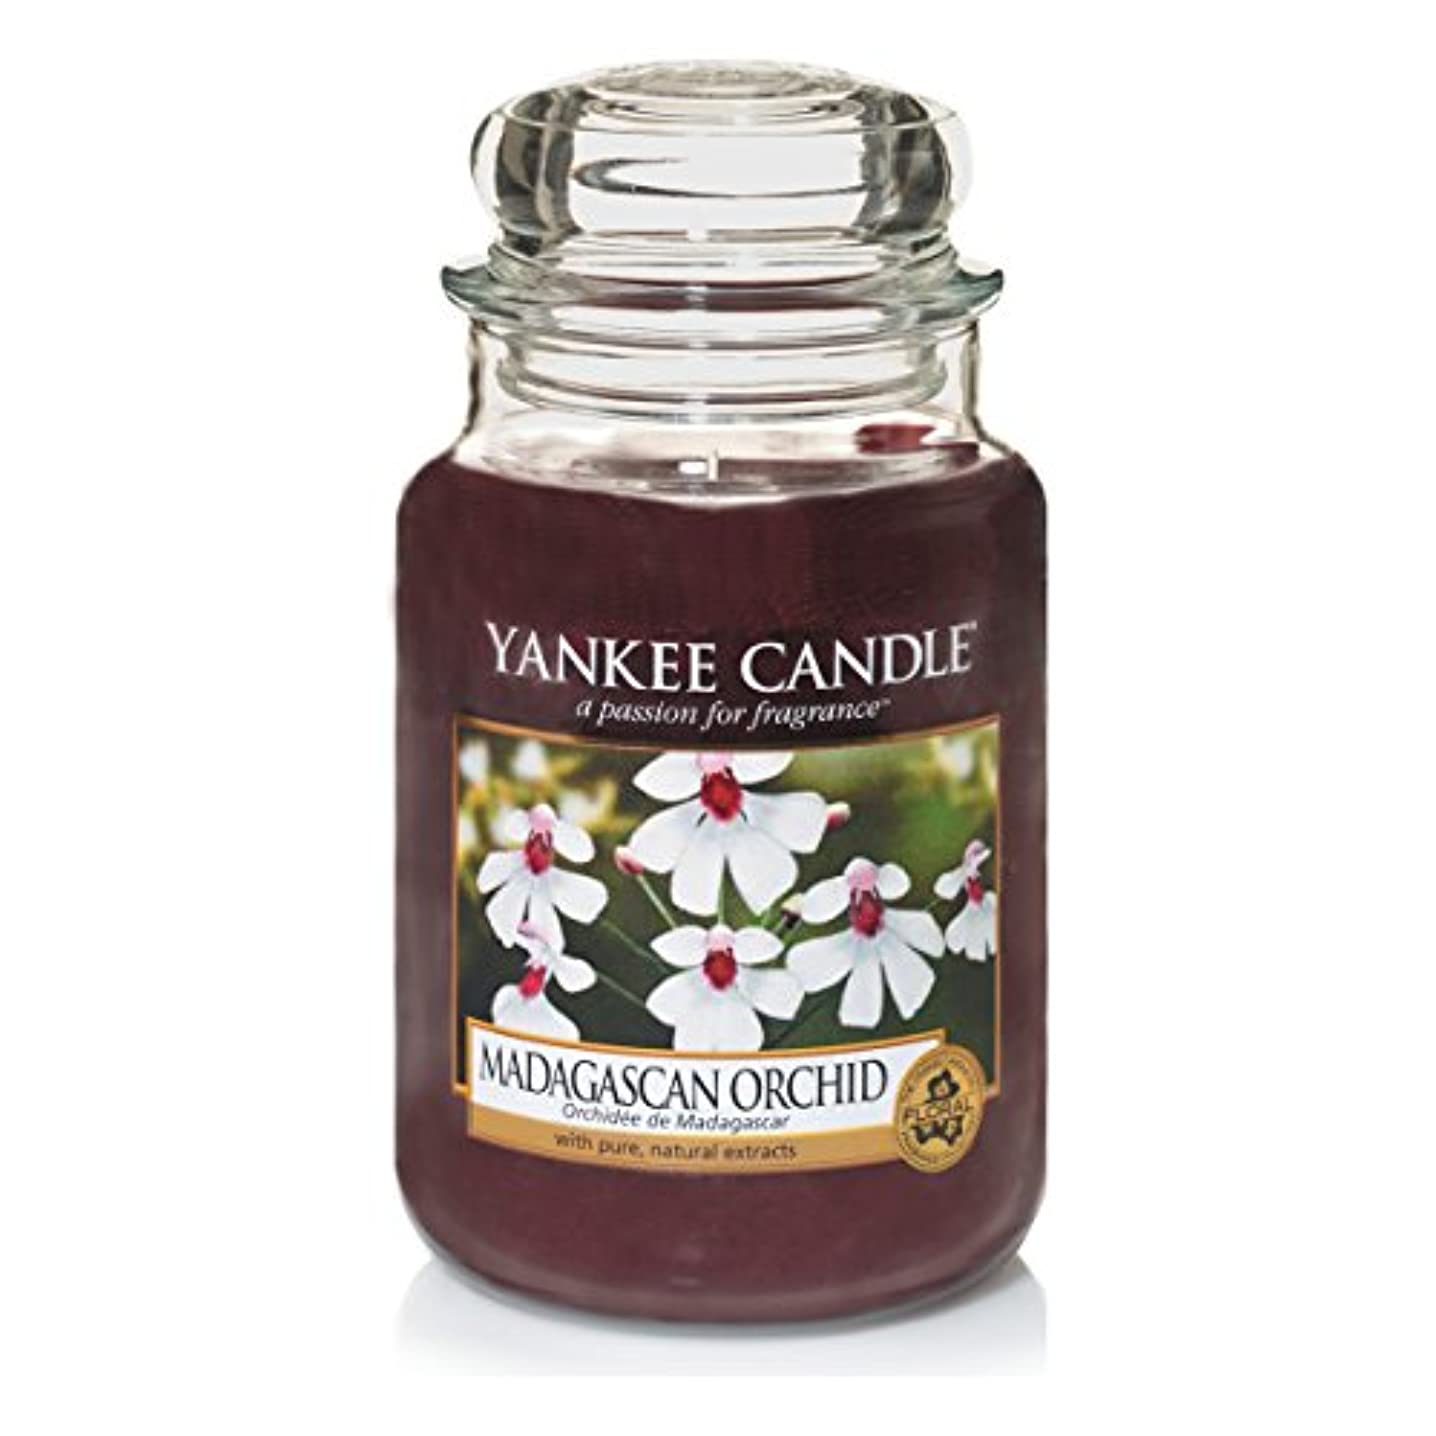 Yankee Candle Large Jar Candle, Madagascan Orchid by Yankee Candle